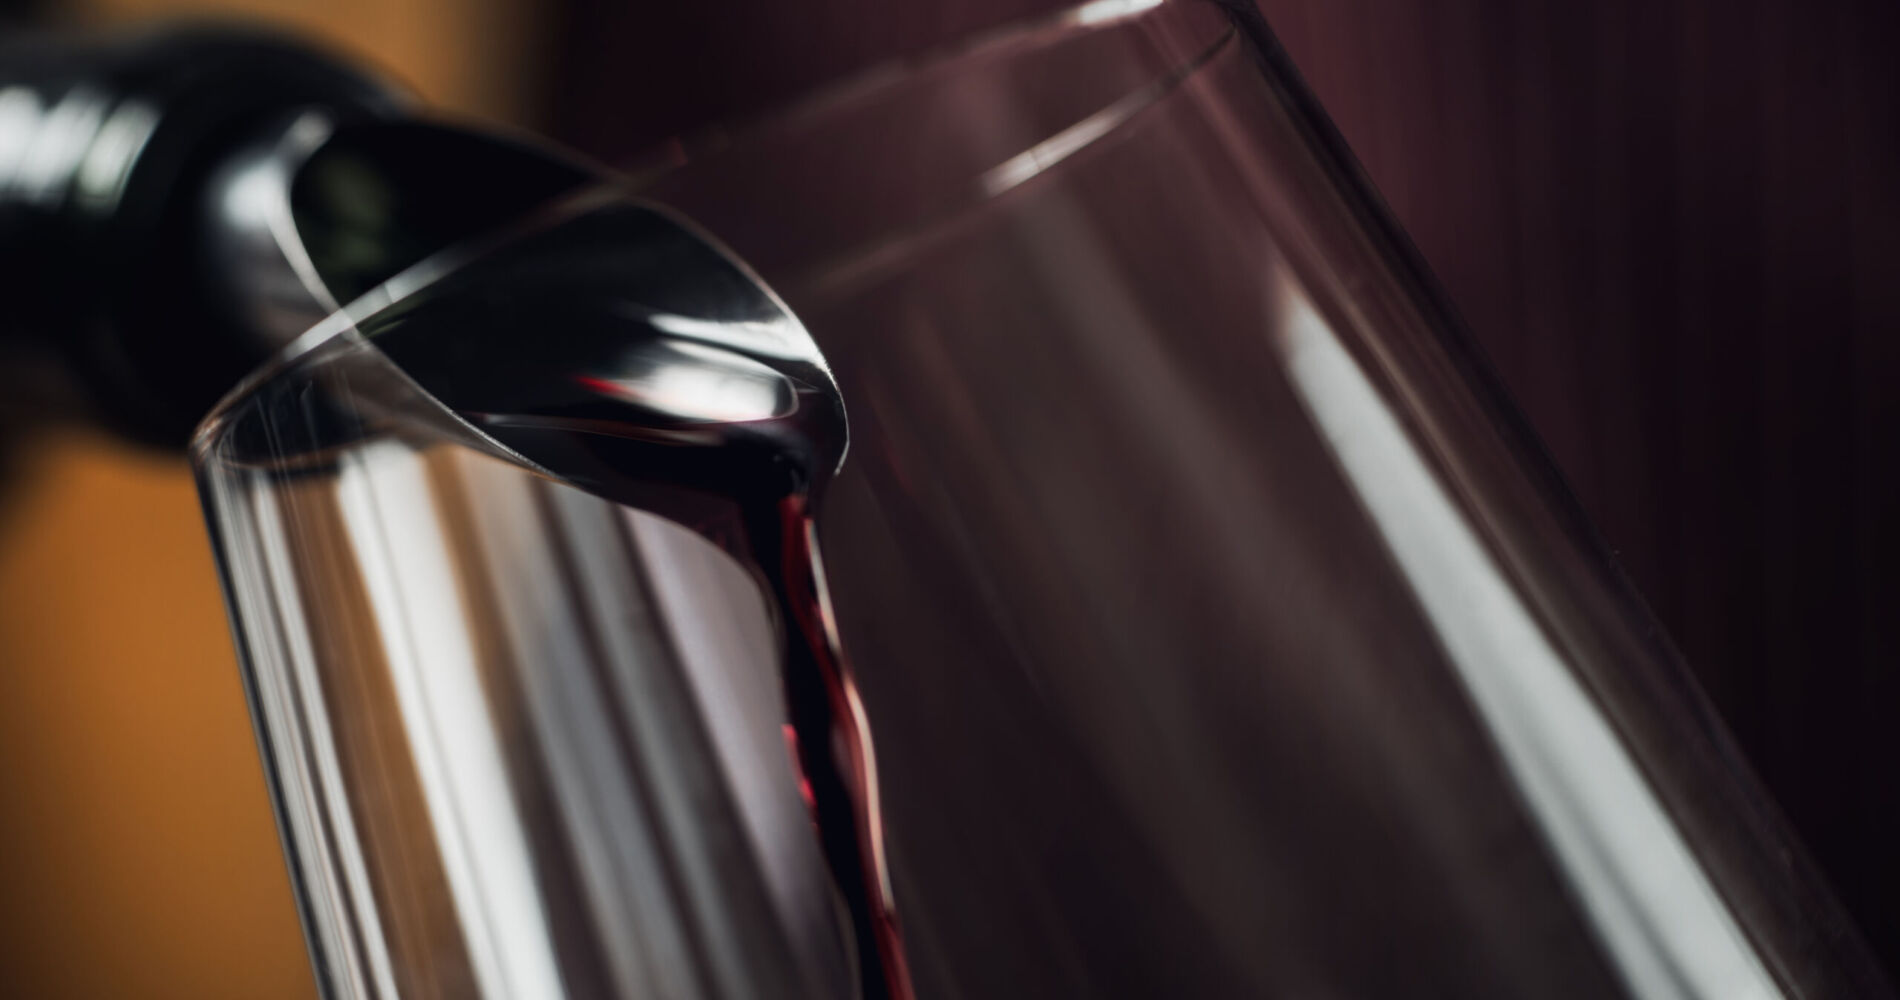 Red wine pouring into wine glass. Bottle with dropstop.